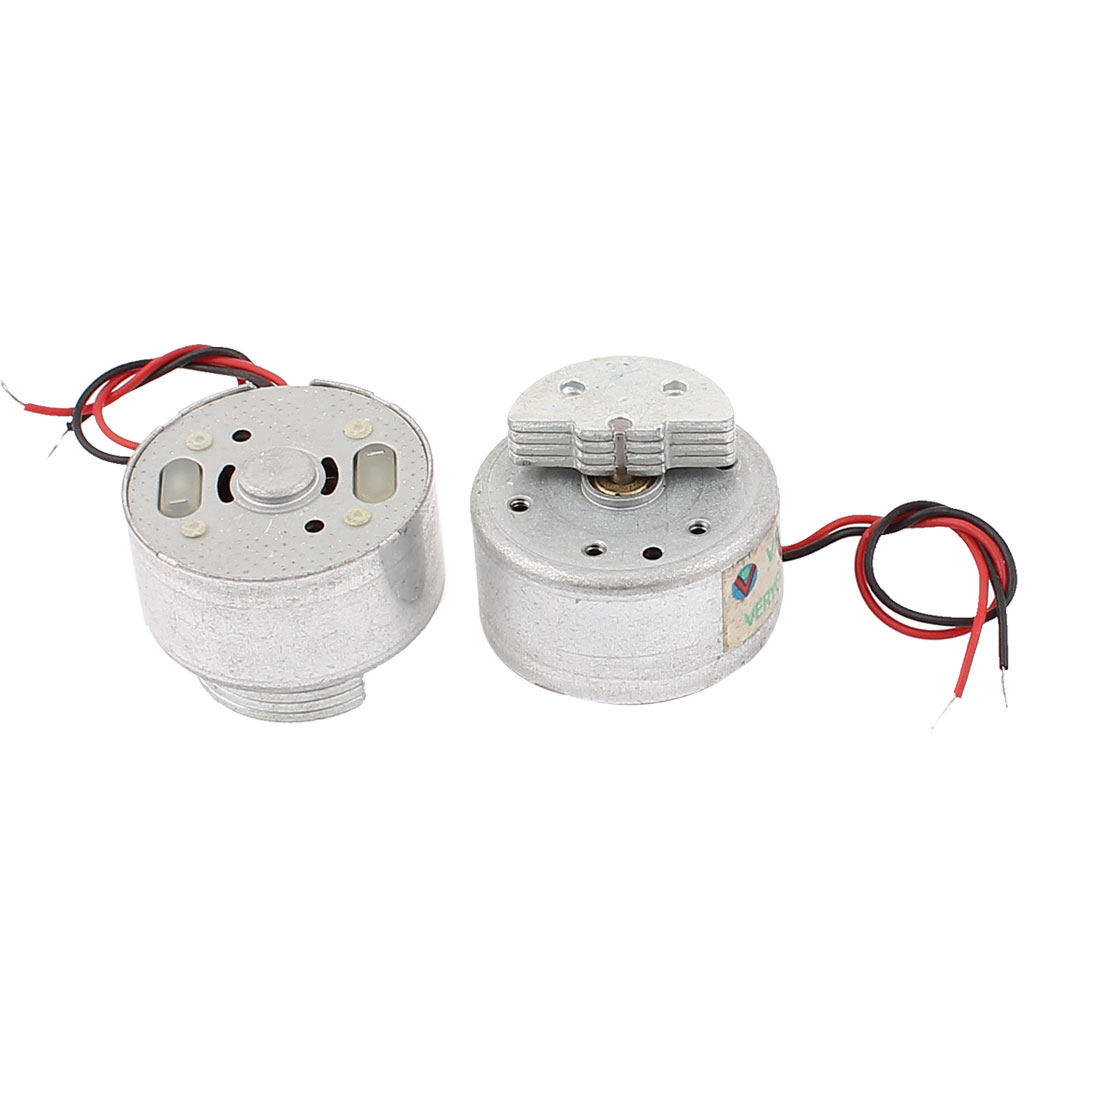 2 Pcs DC 1.5-3V 2700RPM Torque Magnetic Mini Vibration Motor for CD DVD Player